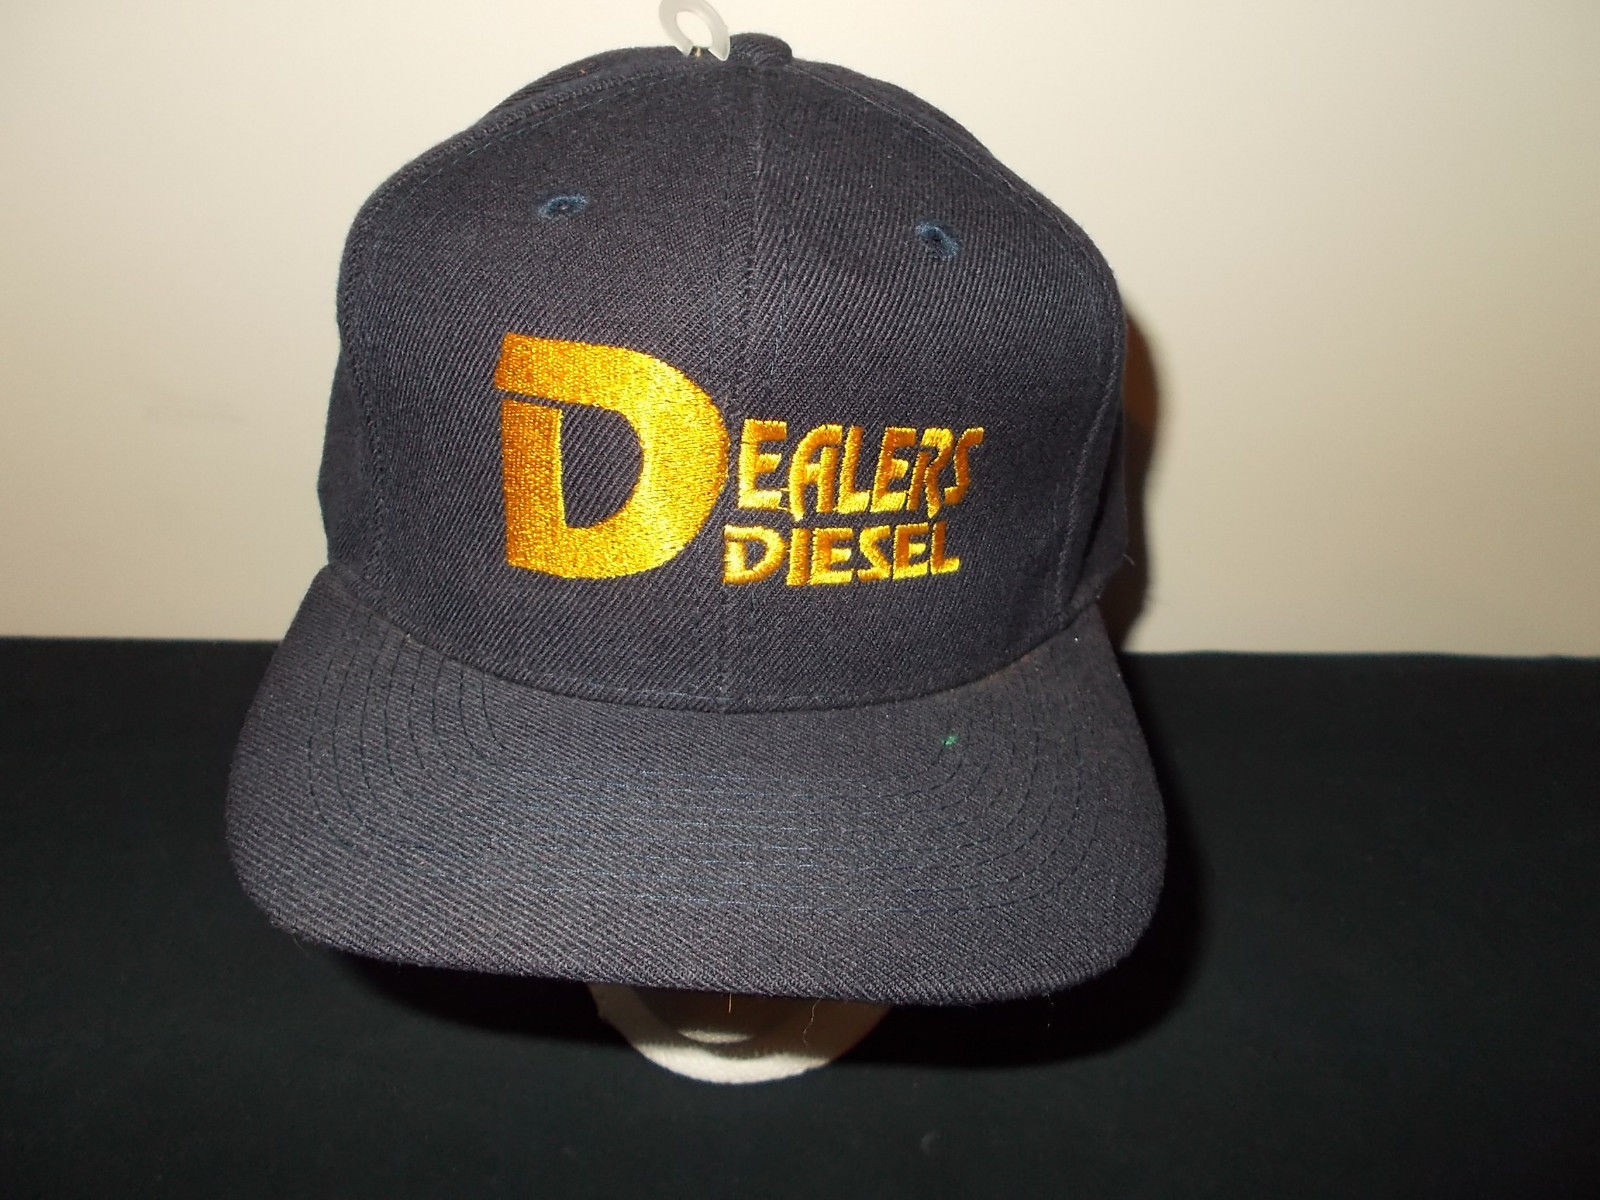 VTG-1990 Dealers Diesel trucking snapback hat sku19 - $27.83